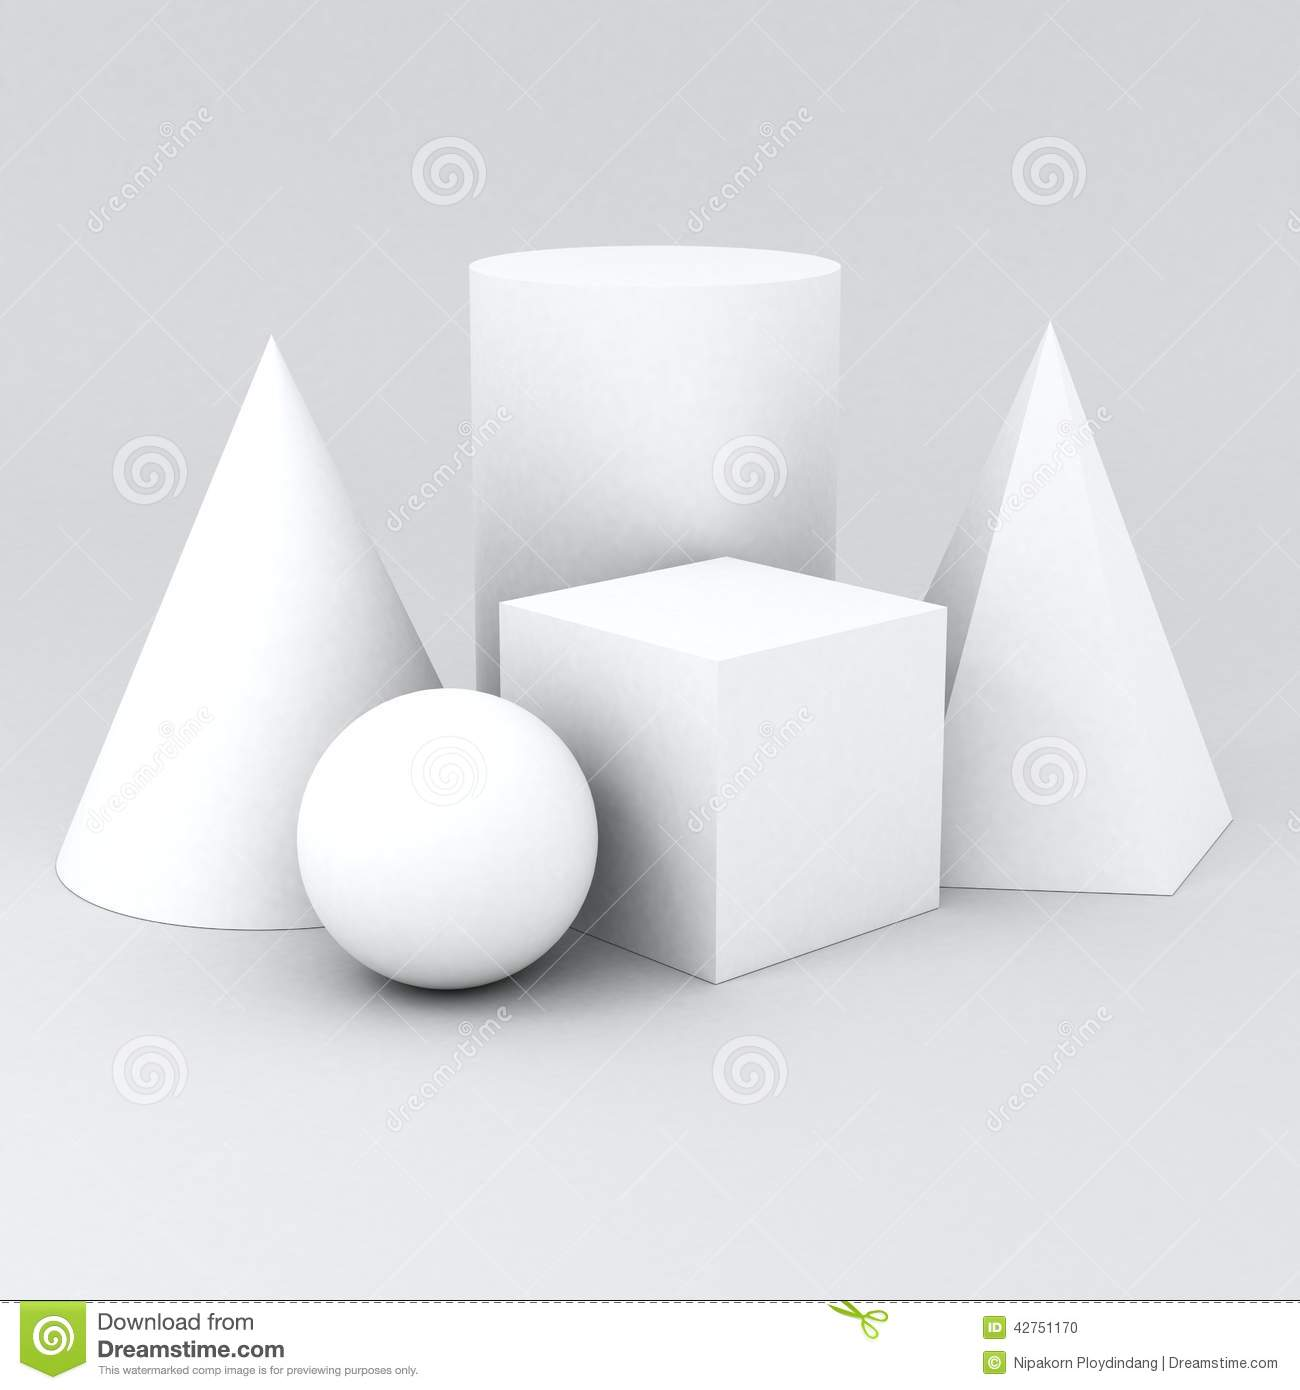 Shapes = sphere cube cylinder cone pyramidfor Practice drawing.